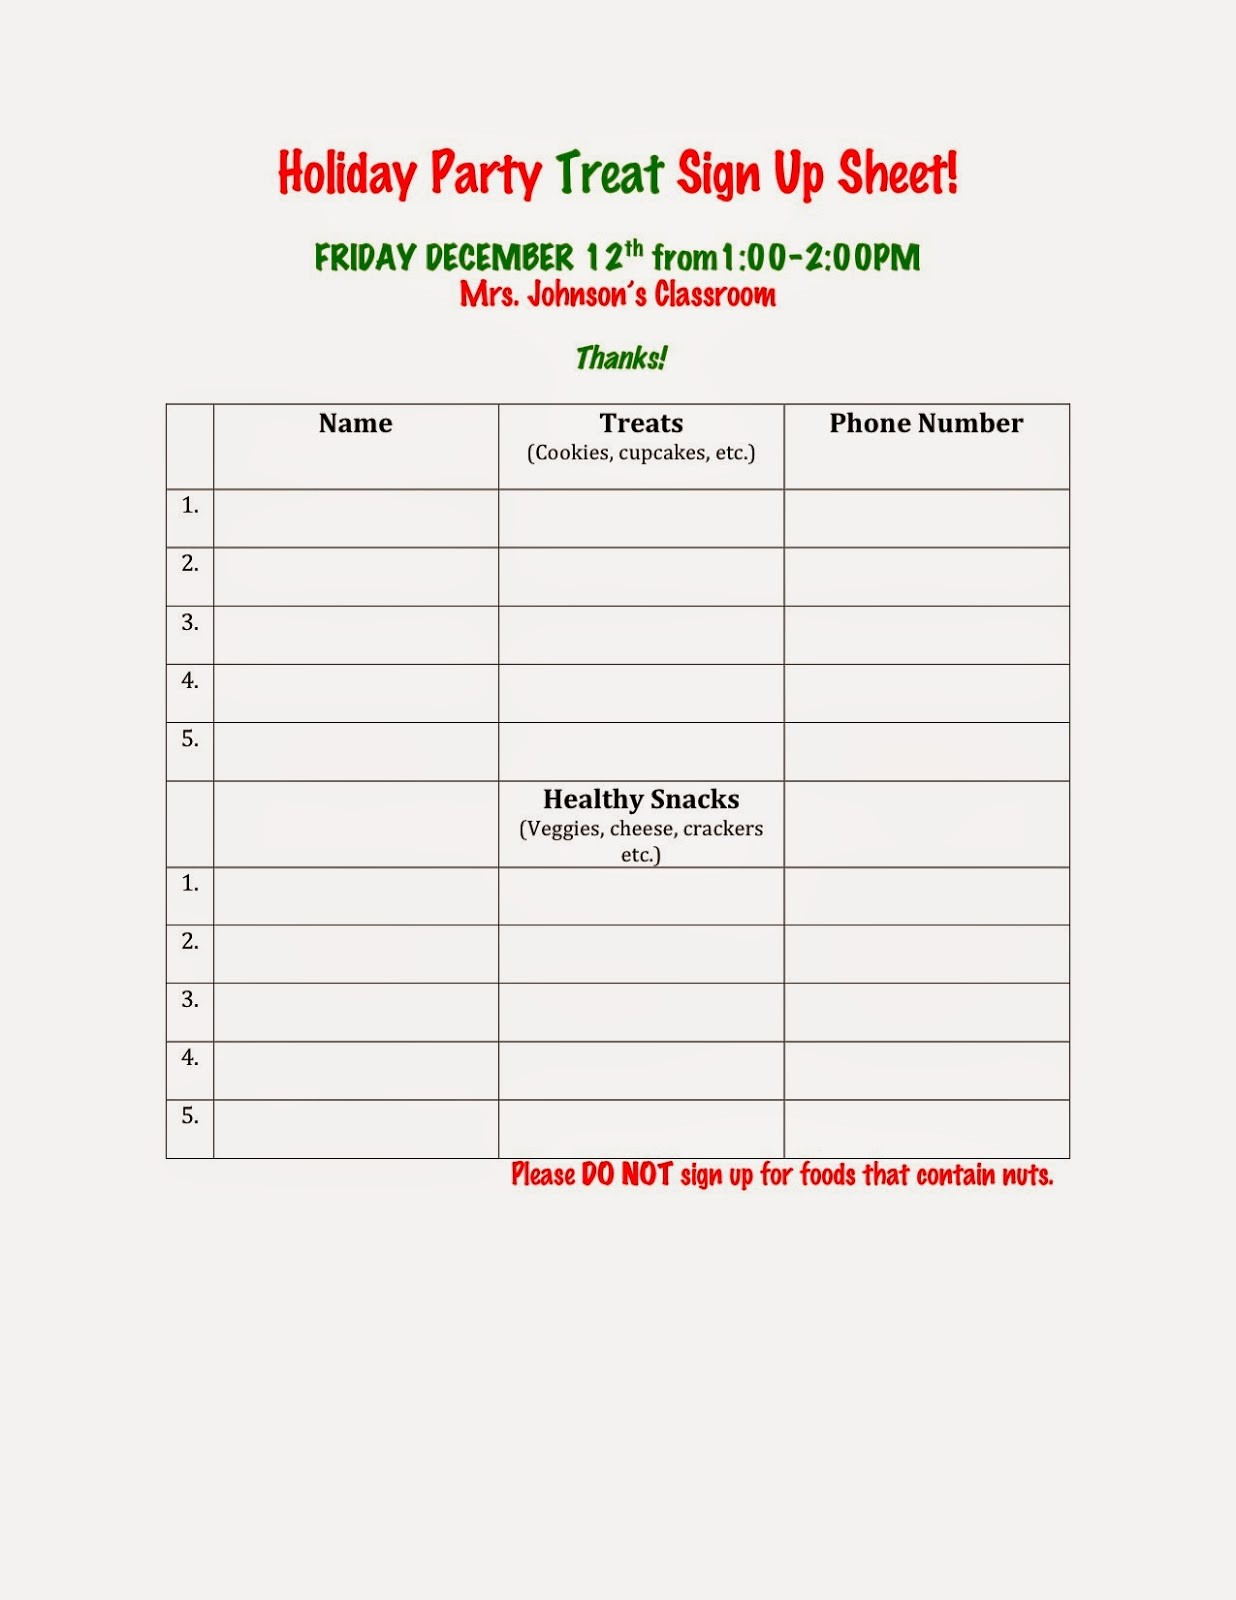 Holiday Sign Up Sheet Template Awesome How to Make A Signup Sheet Bamboodownunder